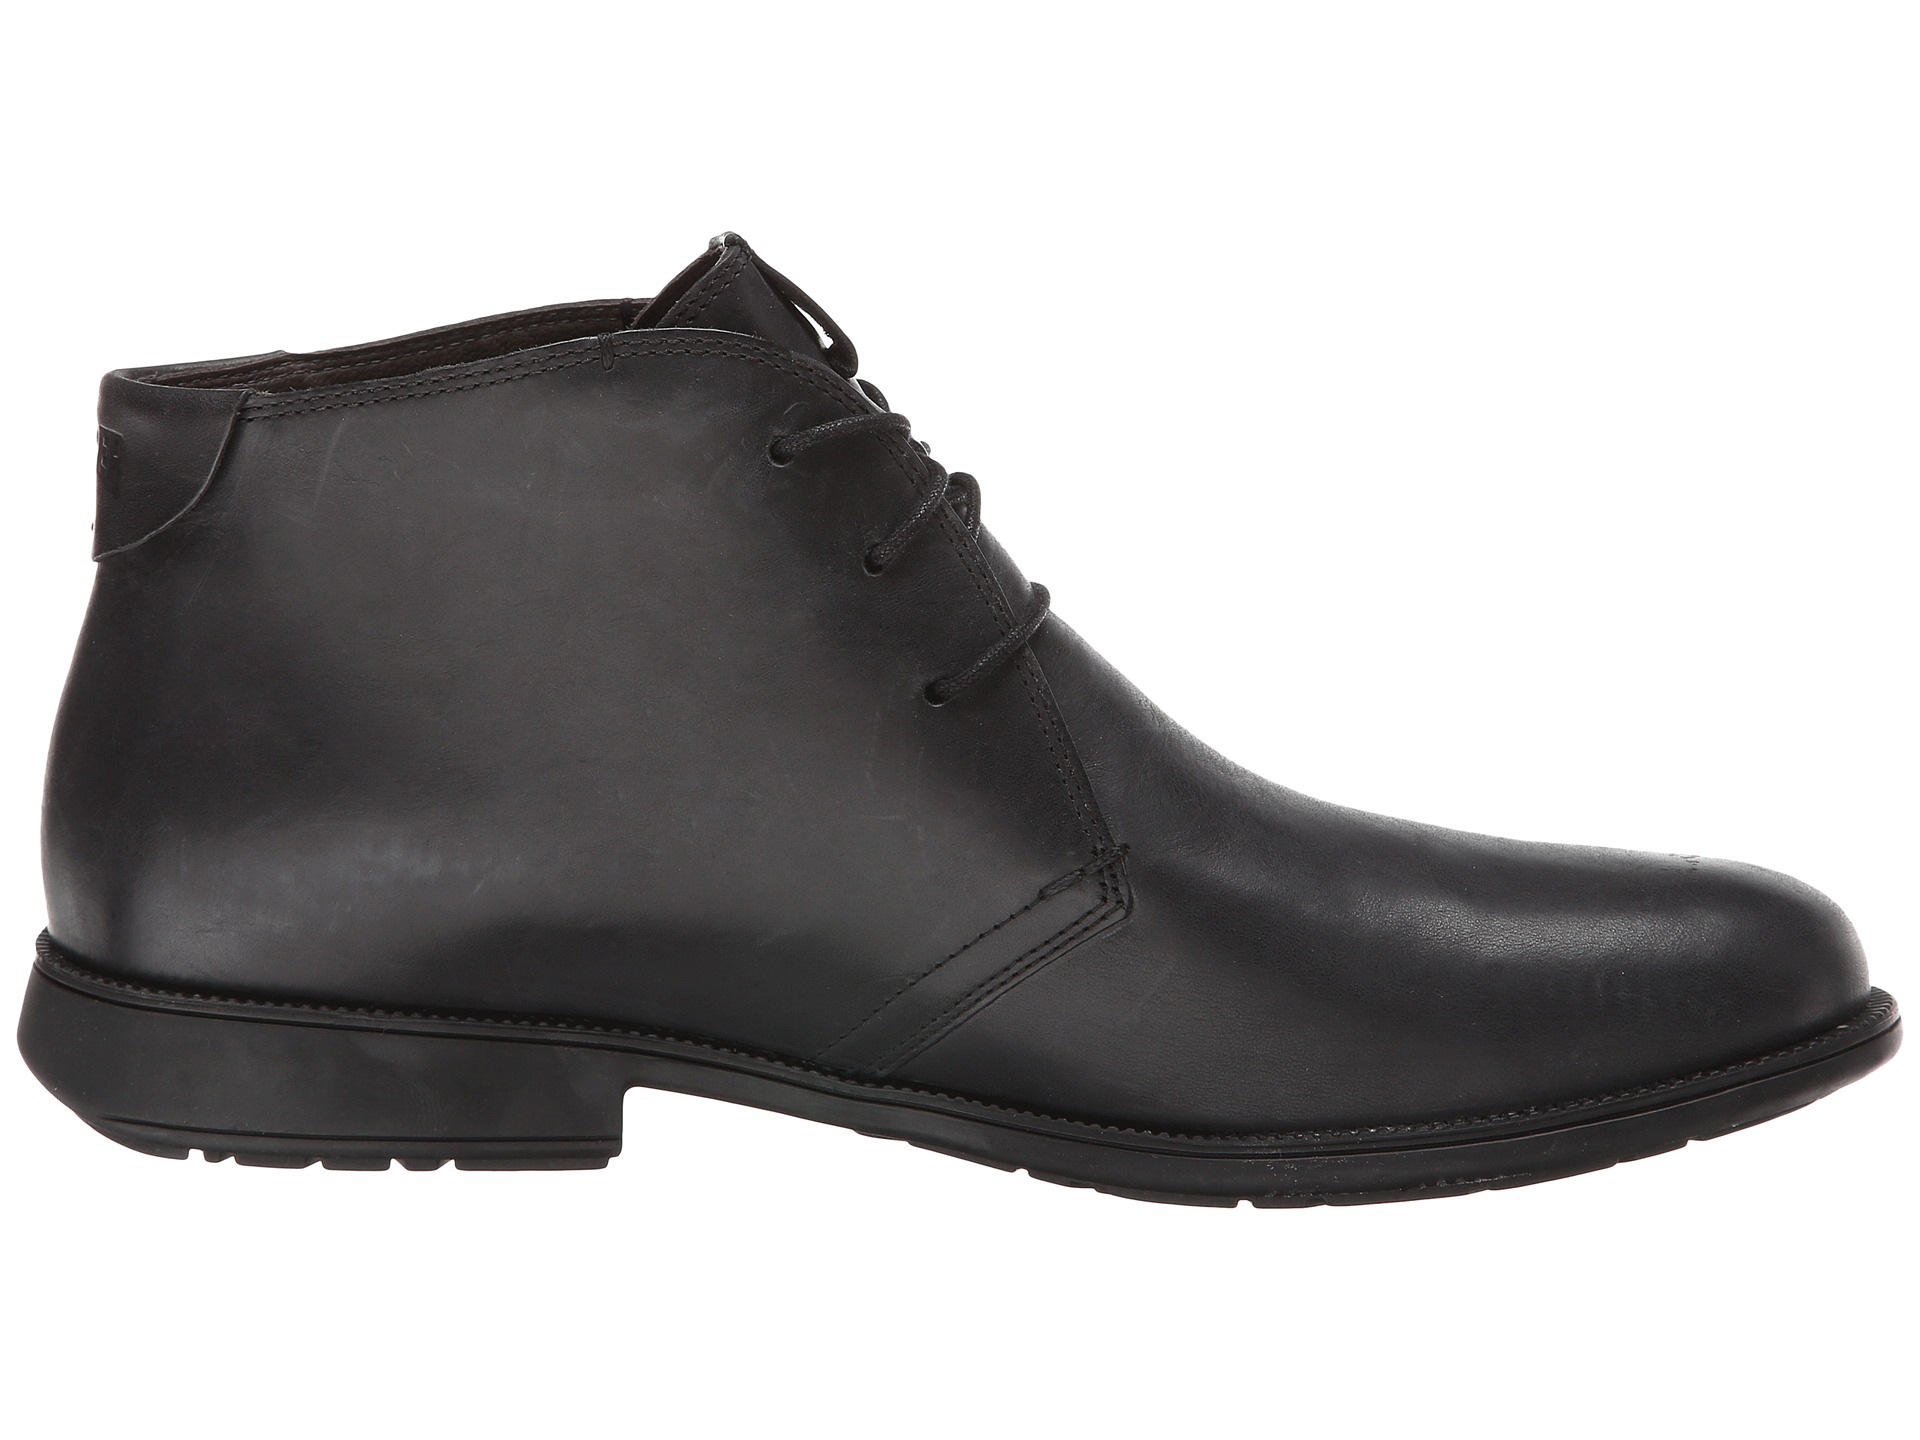 Lyst - Camper 1913 - 36518 Chukka Boot in Black for Men